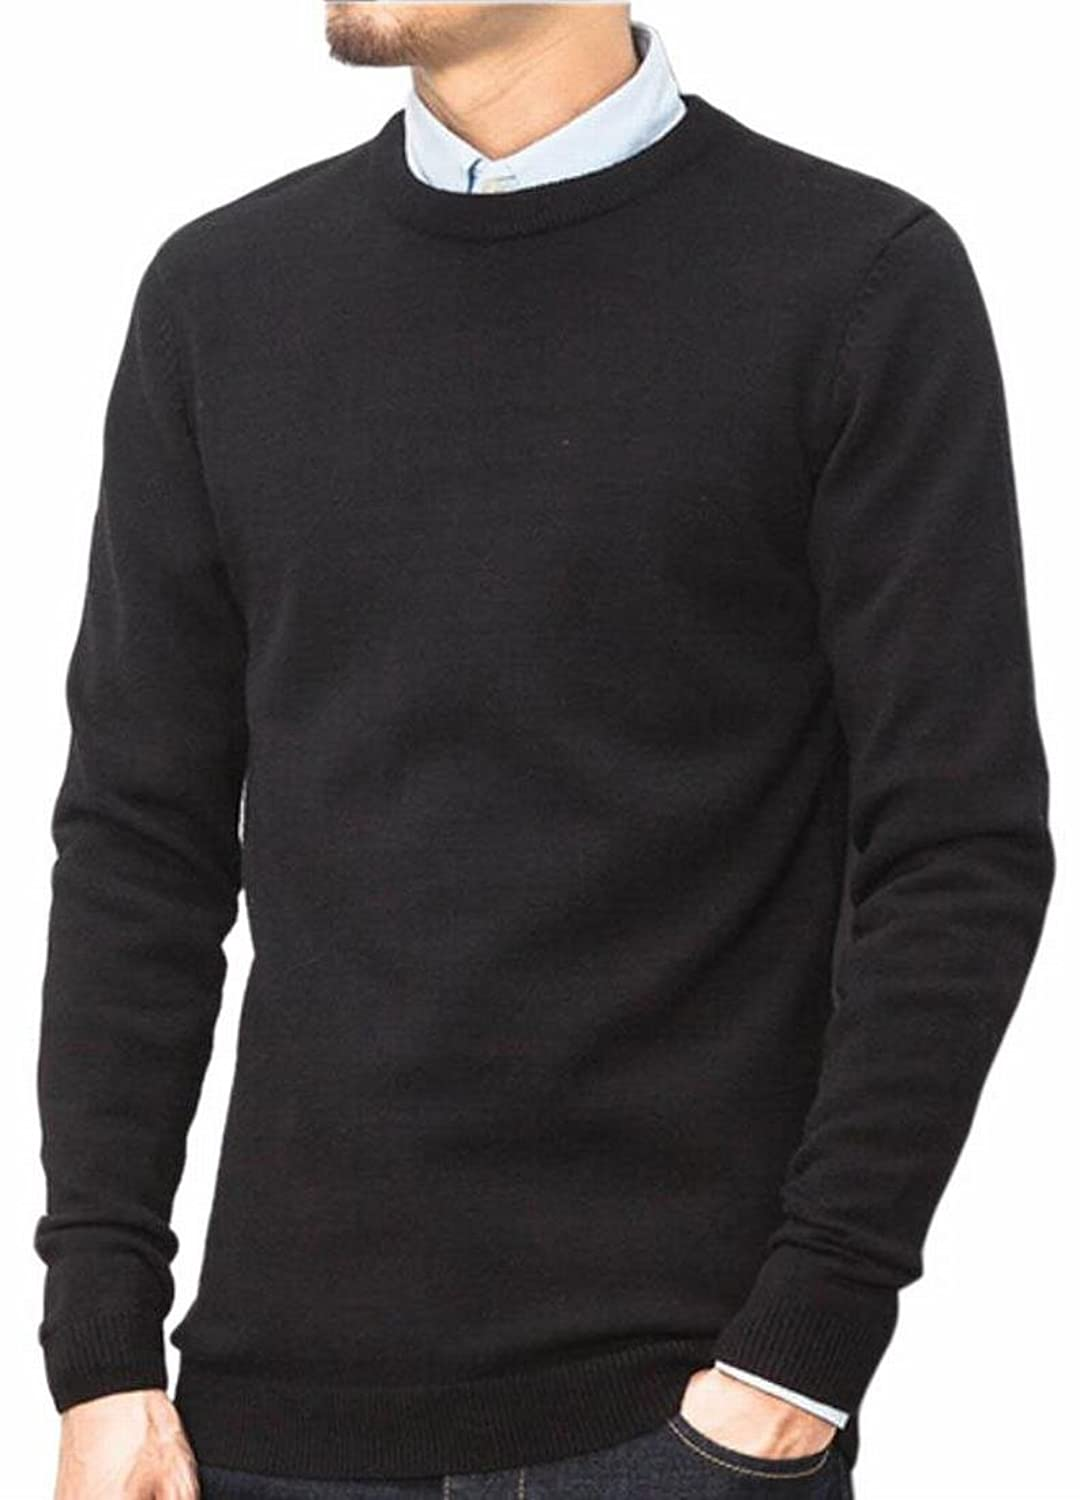 Cheap FLCH+YIGE Mens Classic Round Neck Pure Color Soft Thin Pullovers Sweater